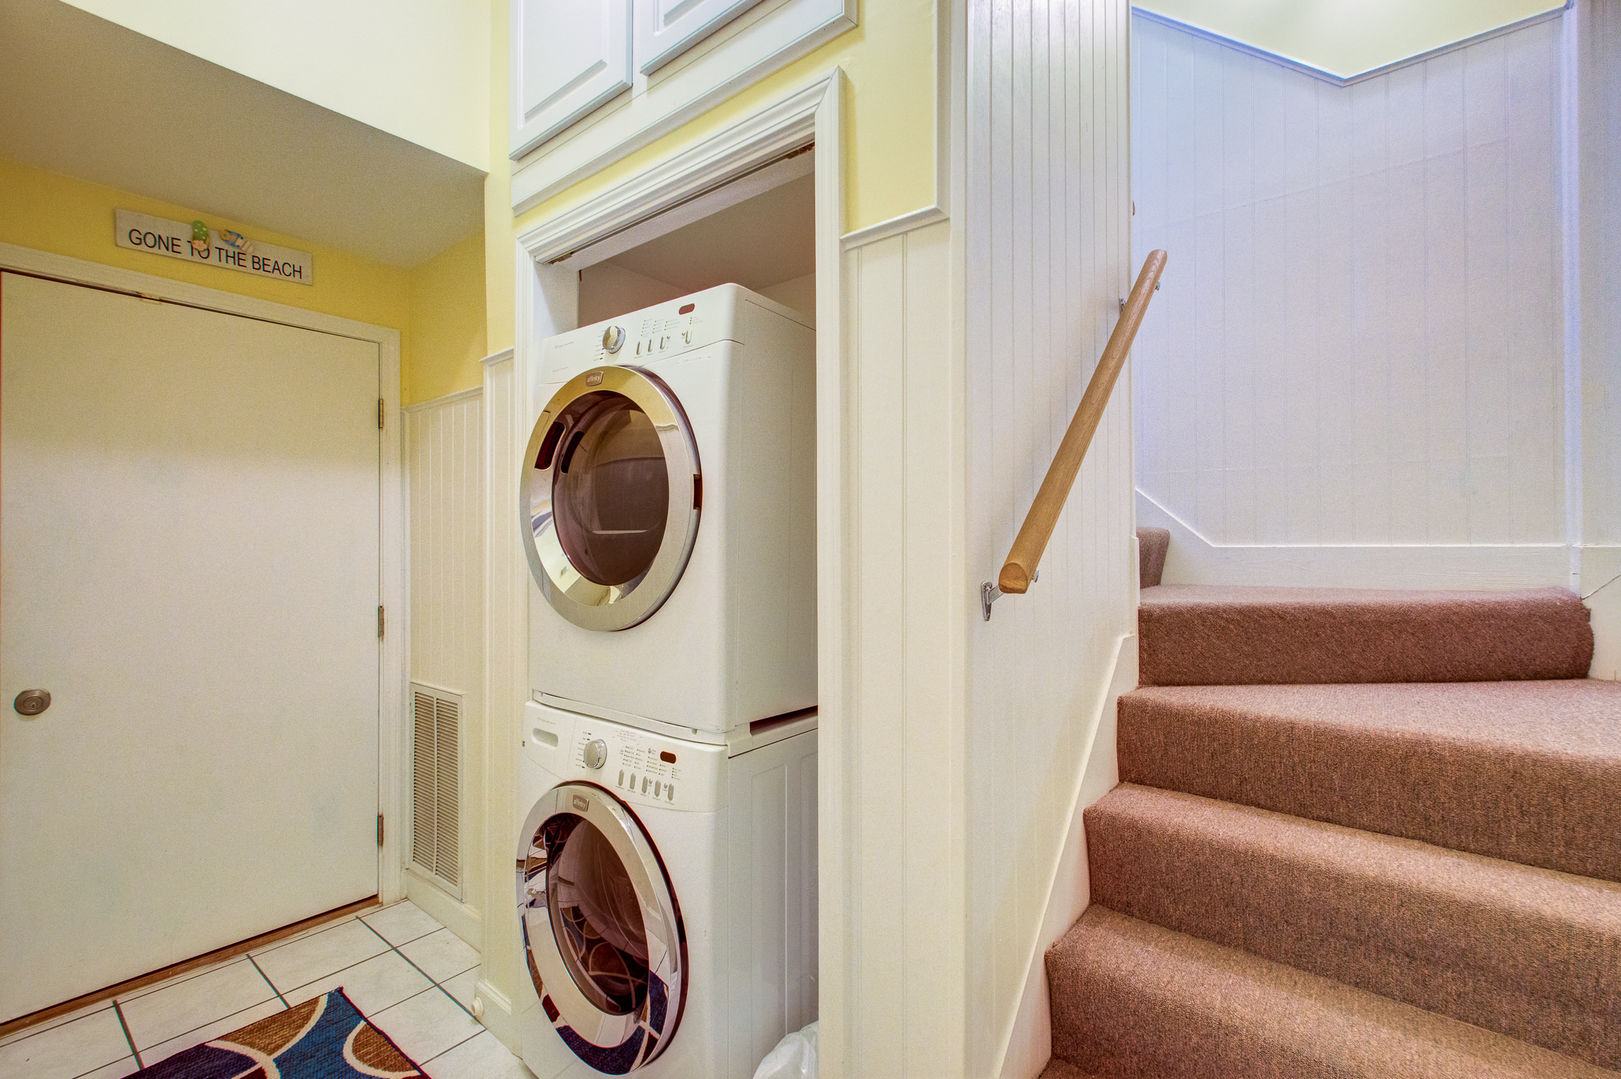 Guests Can Enjoy Washer and Dryer.